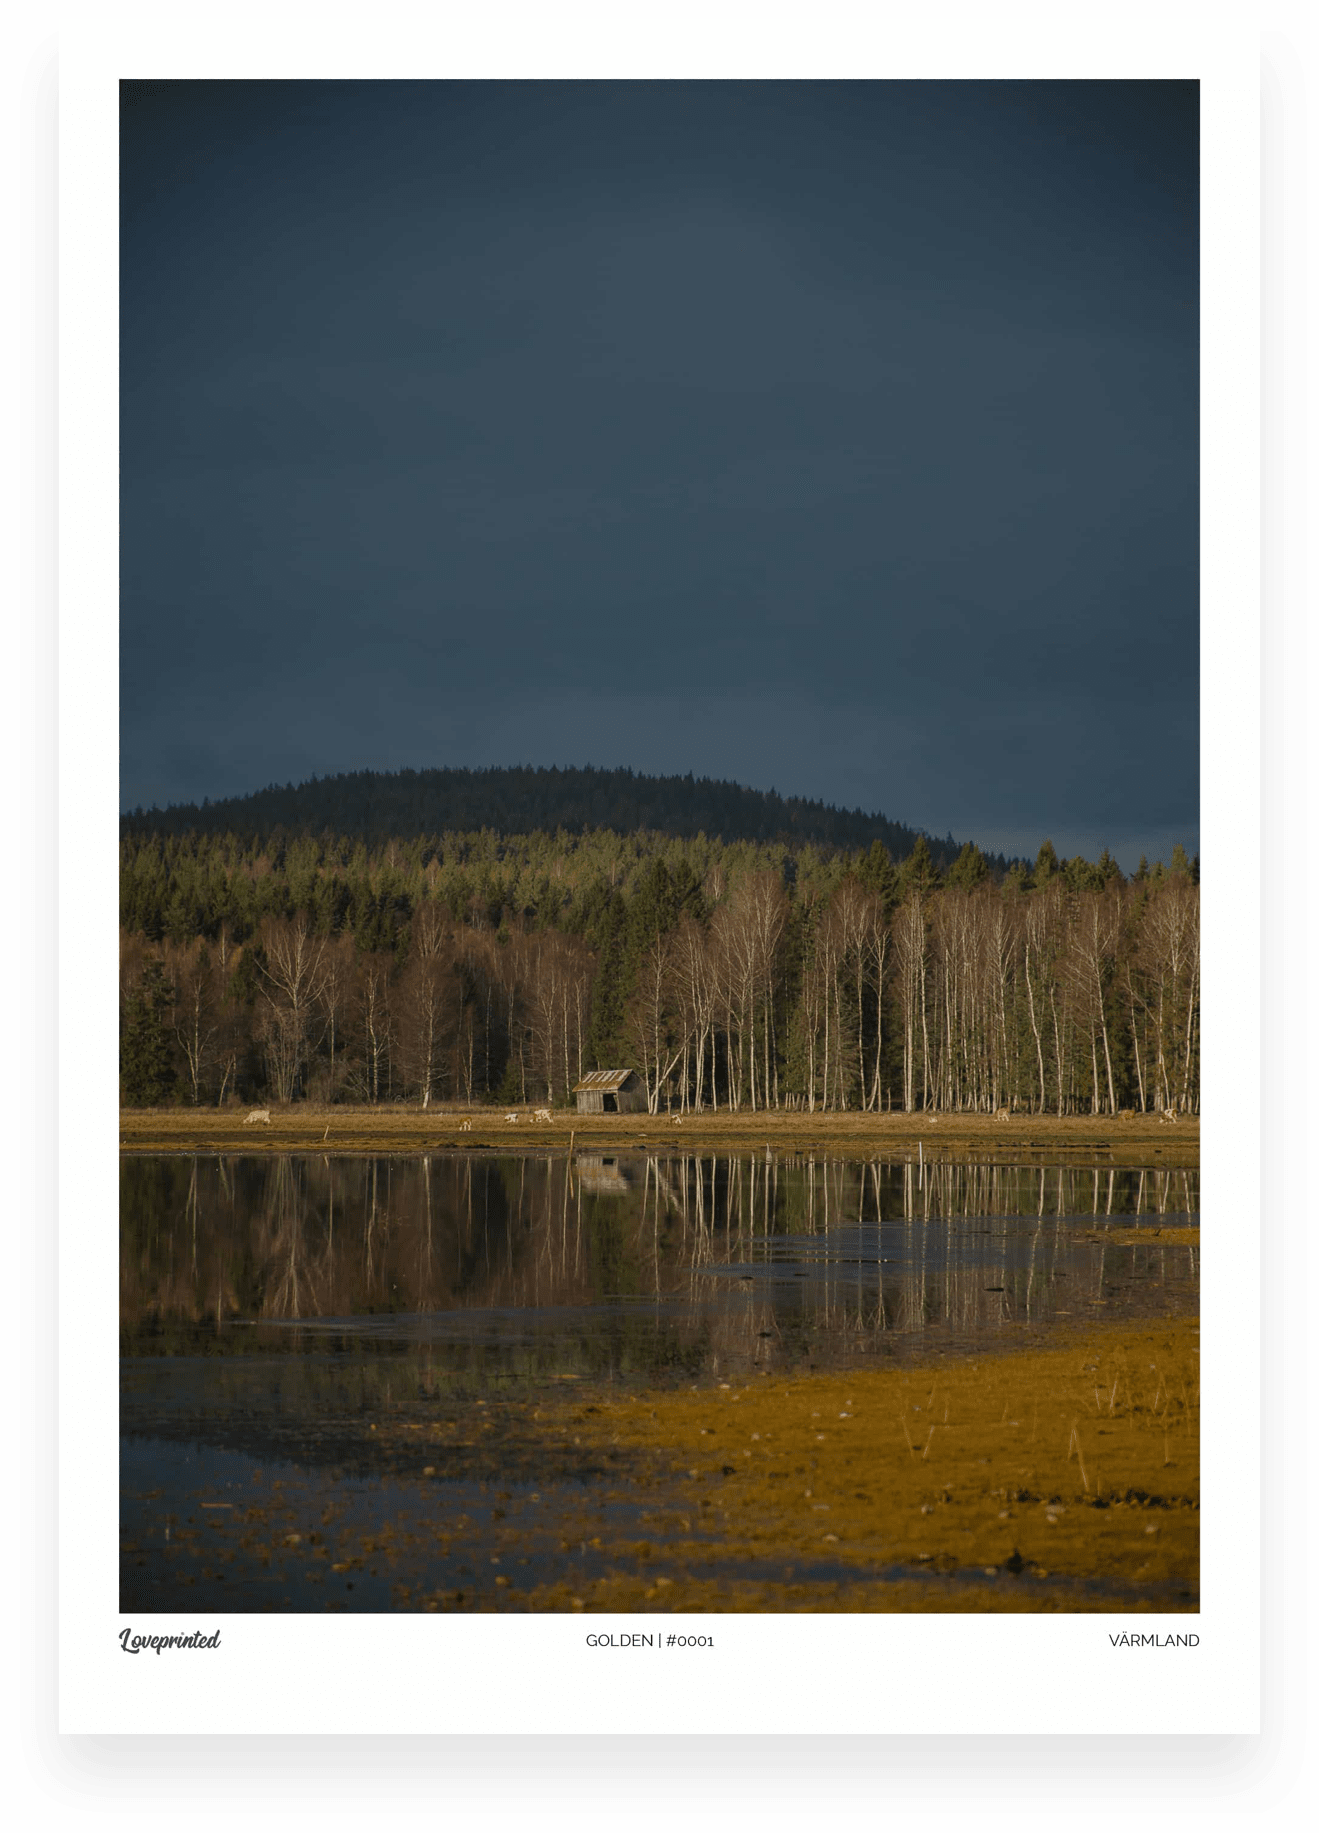 Golden | An Image of a Swedish lake and trees made by Loveprinted